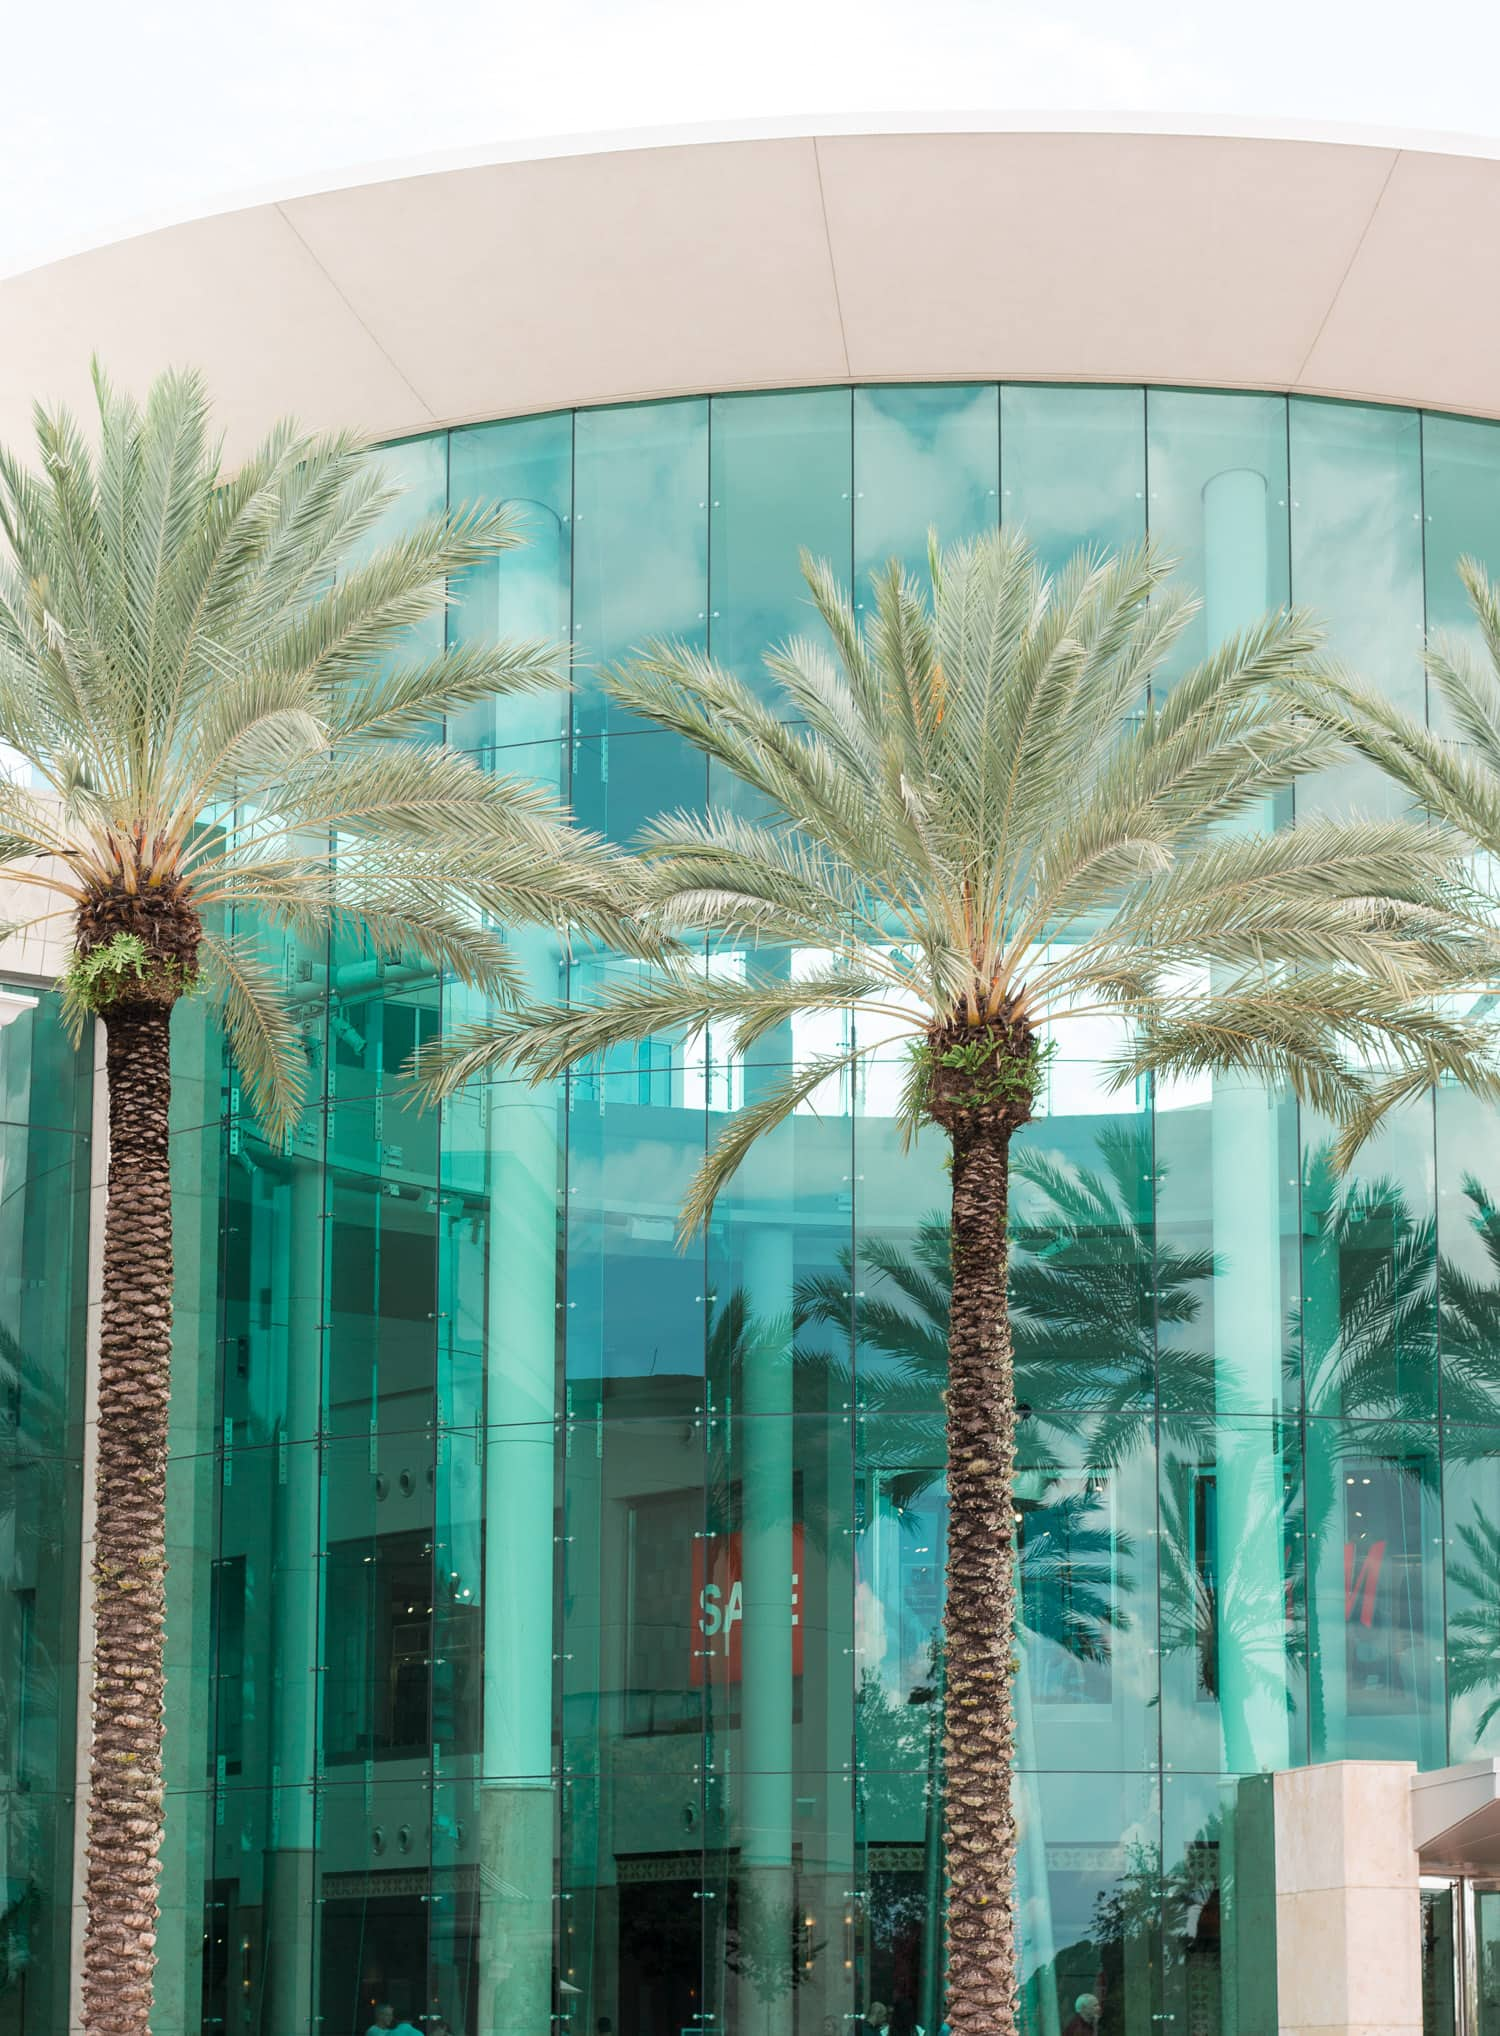 Mall at Millenia | Planning a trip to Orlando? I've rounded up the top 10 things to do in Orlando, Florida, that are guaranteed to make your trip a success. Whether you're moving to Orlando or just headed in on vacation, you will LOVE this list of fun activities in Orlando by Florida travel blogger Ashley Brooke Nicholas #CORTatHome sponsored by CORT Furniture | affordable travel tips, orlando vacation tips, florida travel, vacation tip